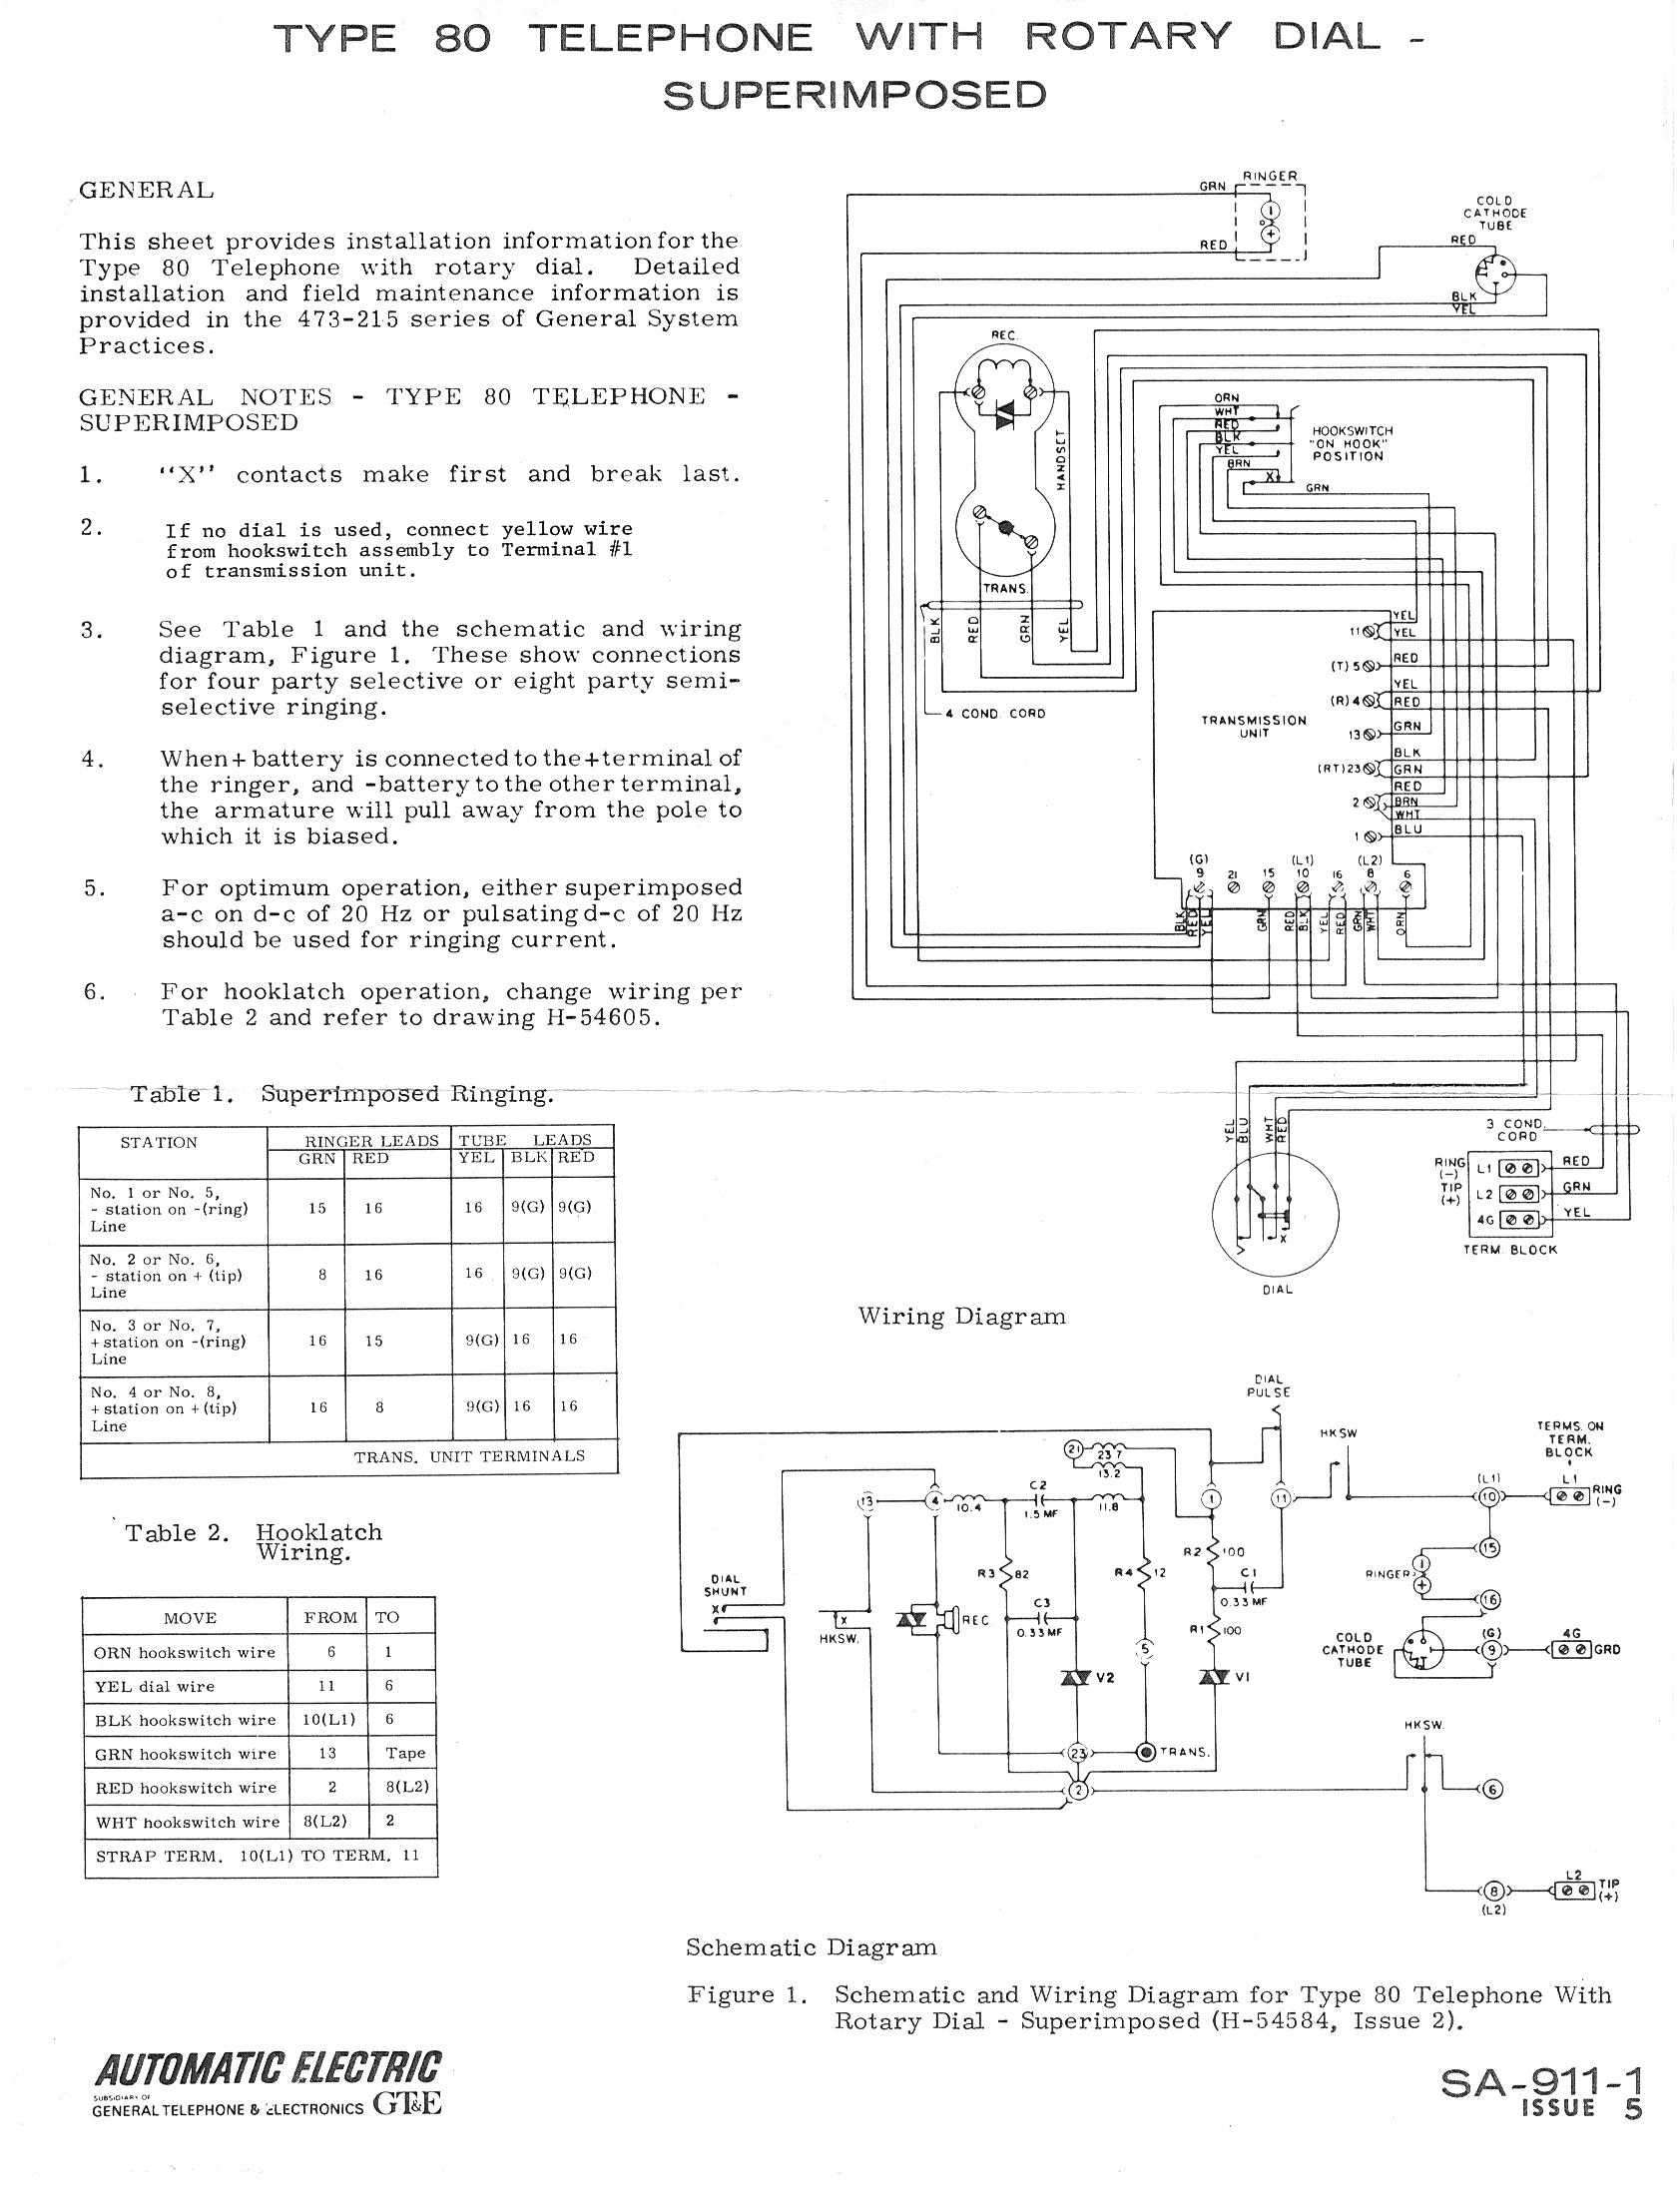 ae80 2 telephone technical references western electric 554 wiring diagram at nearapp.co